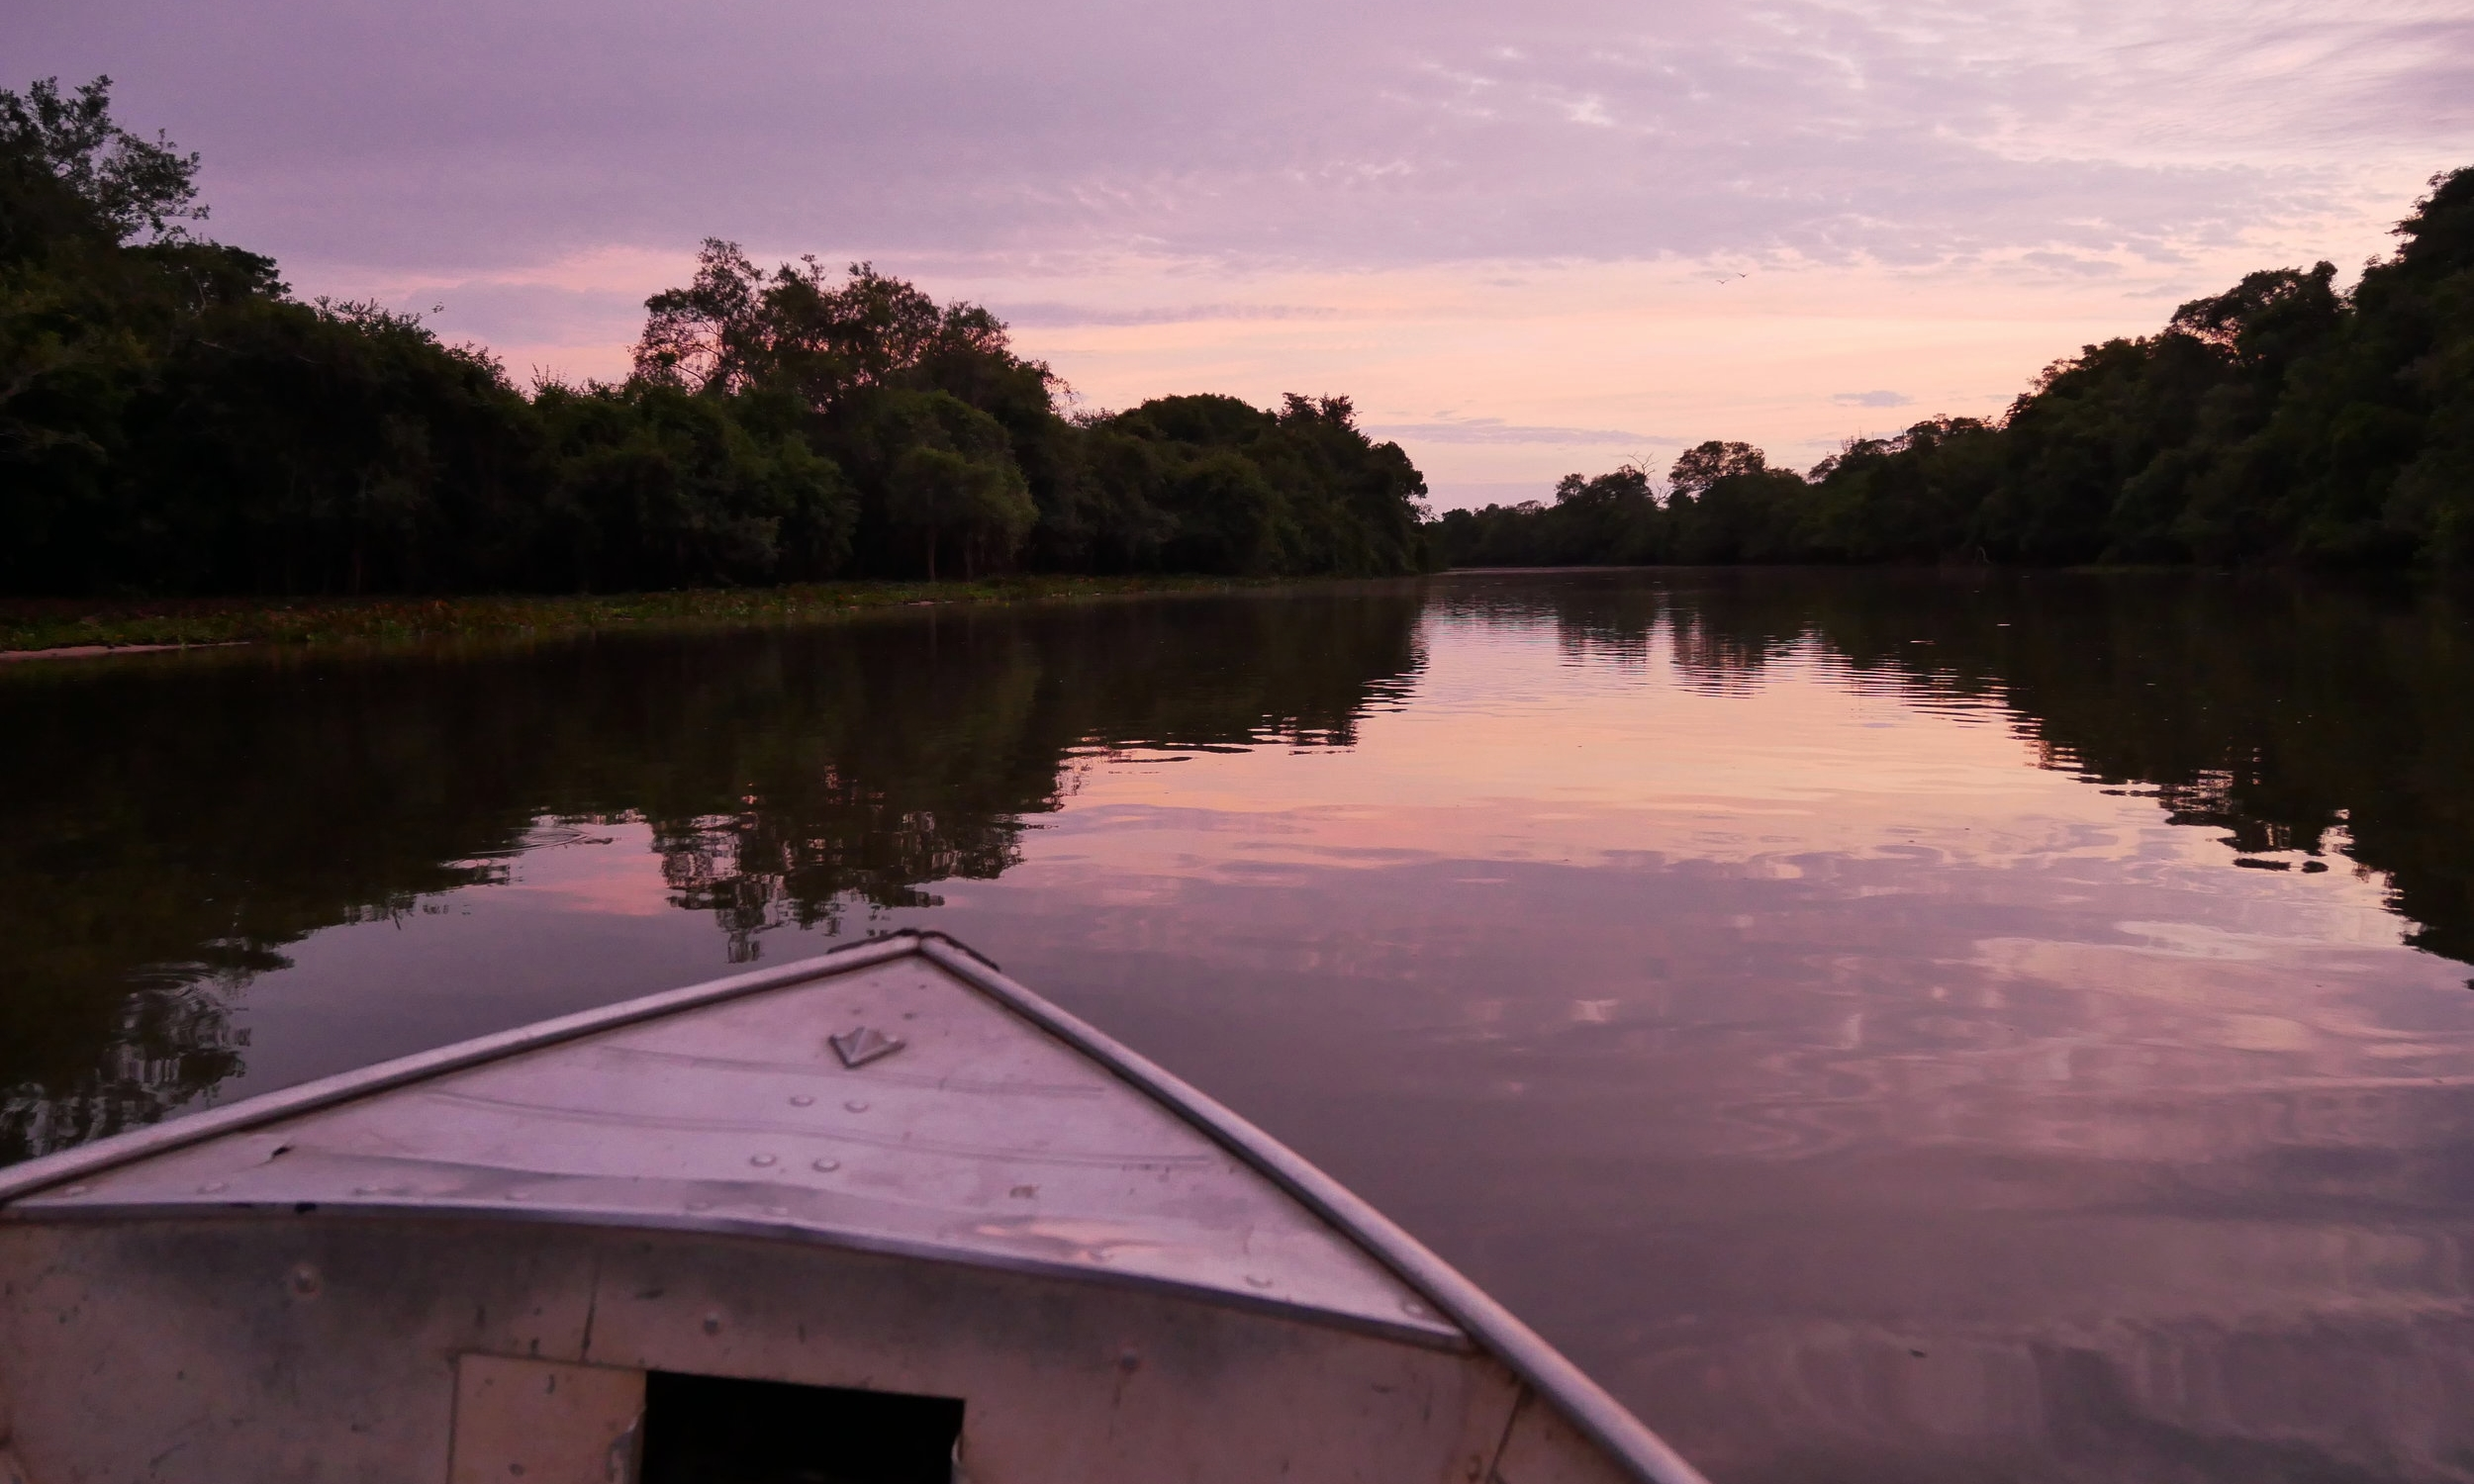 Sunrise over the rivers of the Pantanal